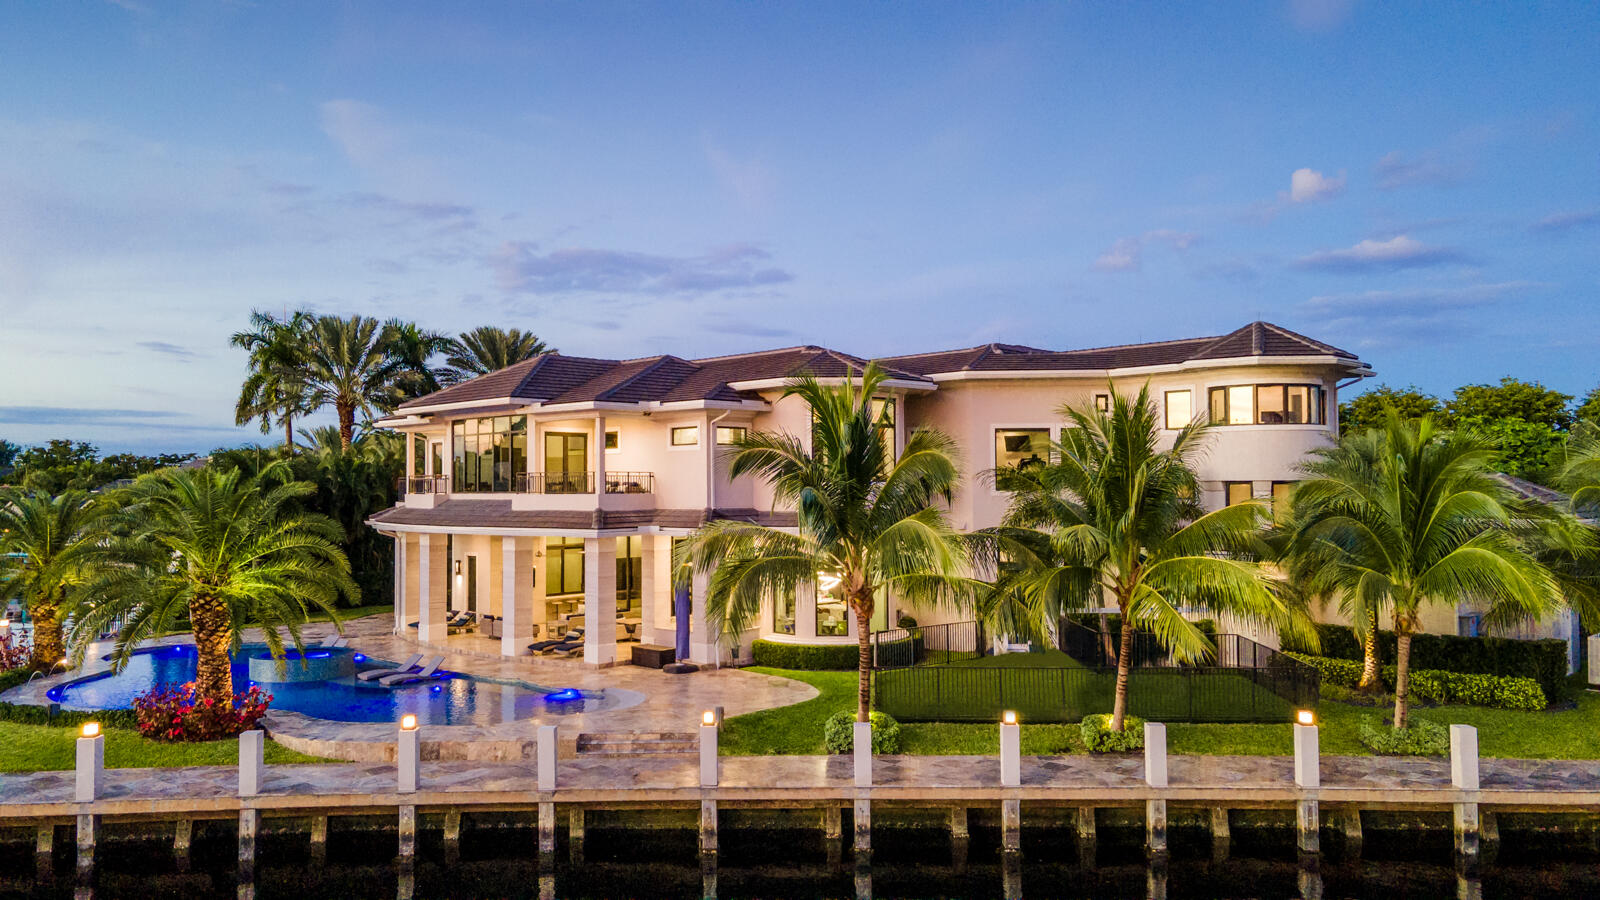 Bay Colony, 30 Bay Colony, Fort Lauderdale, Florida 33308